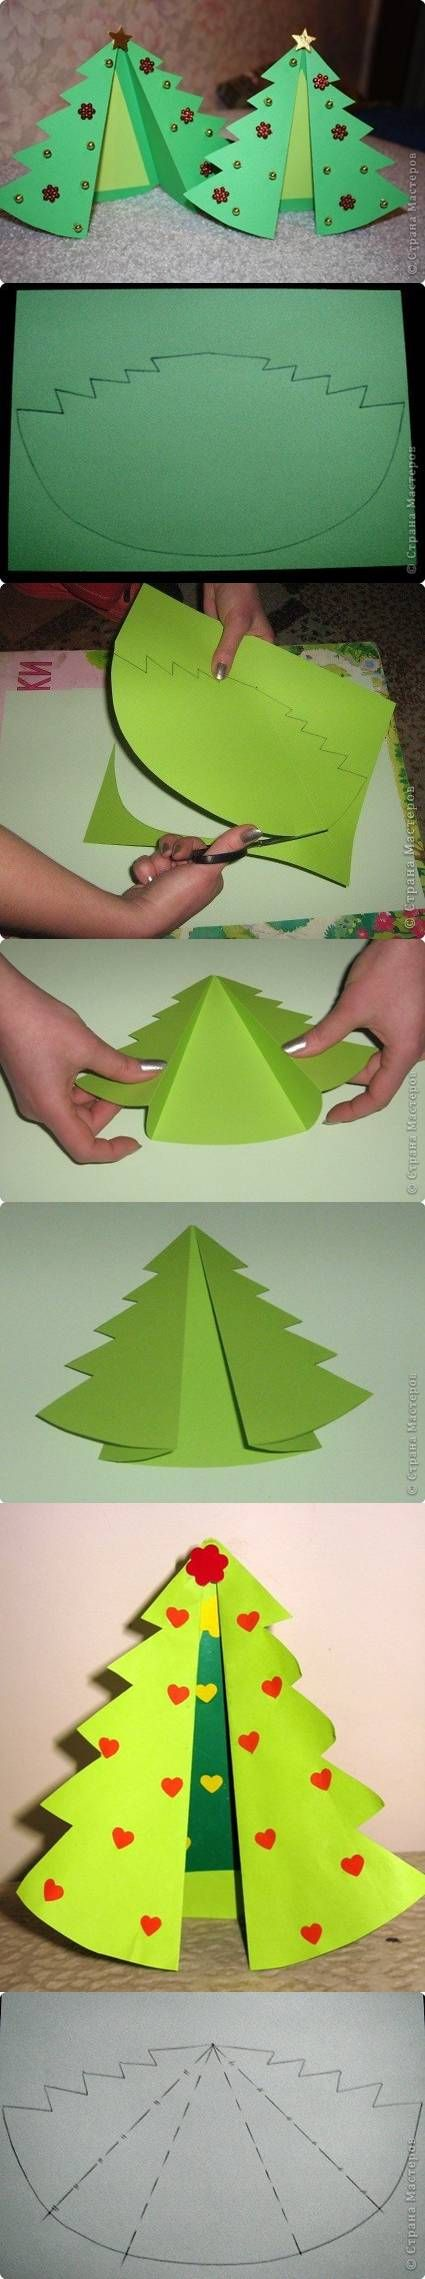 diy-tree-style-card